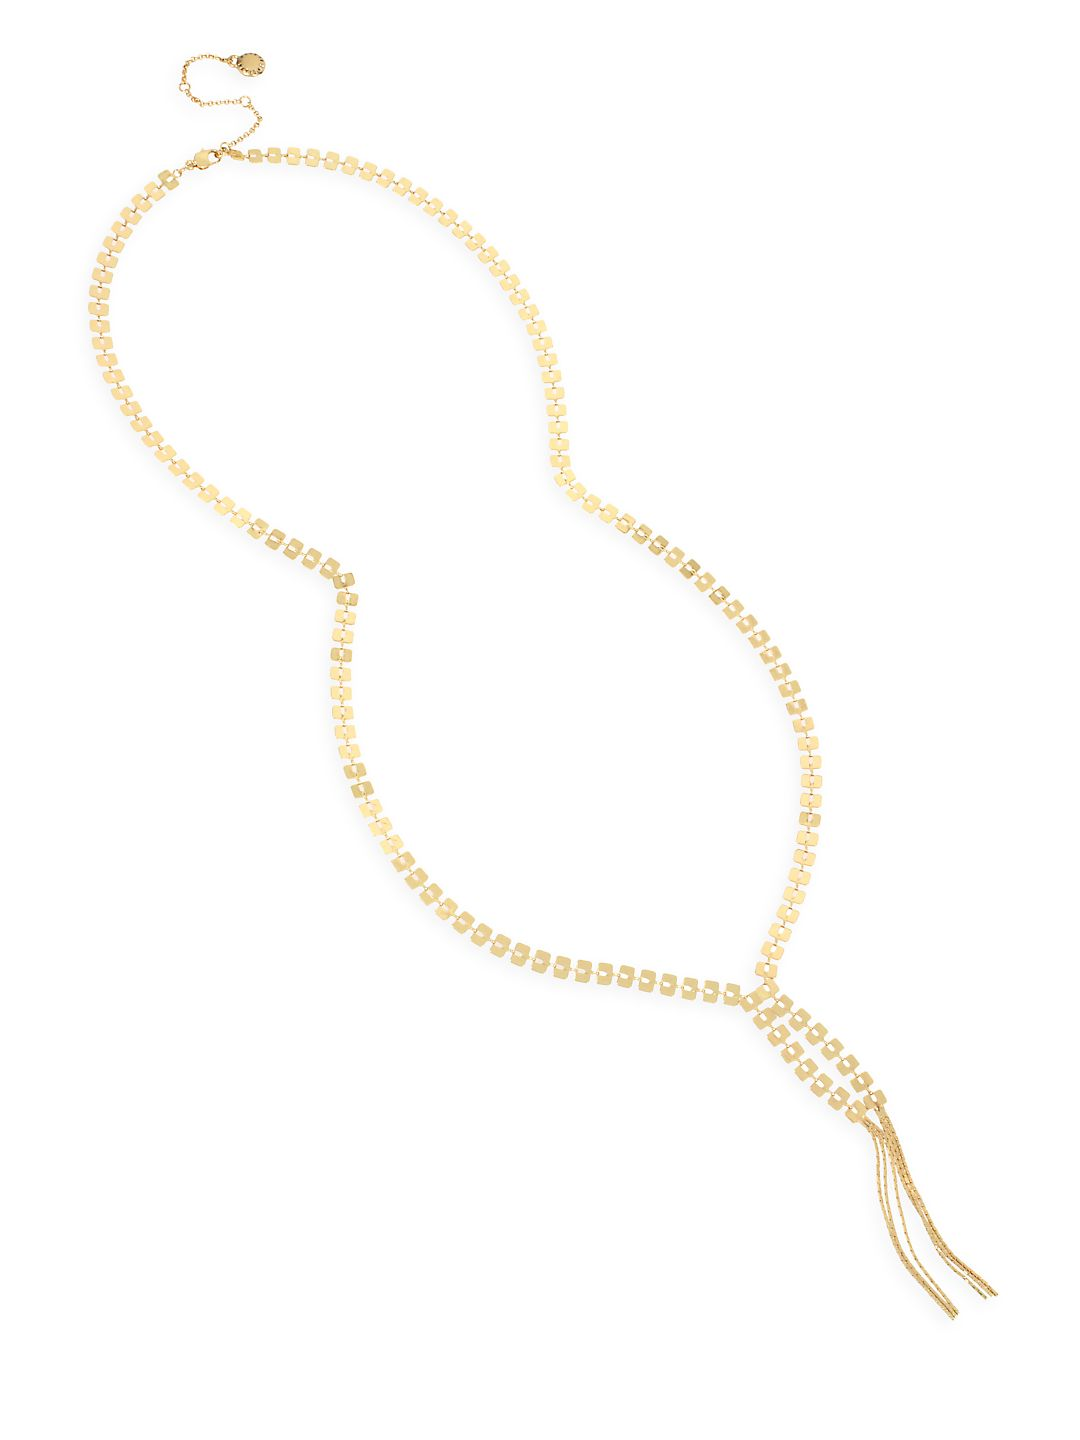 Future Femme Geometric Chain Y-Necklace